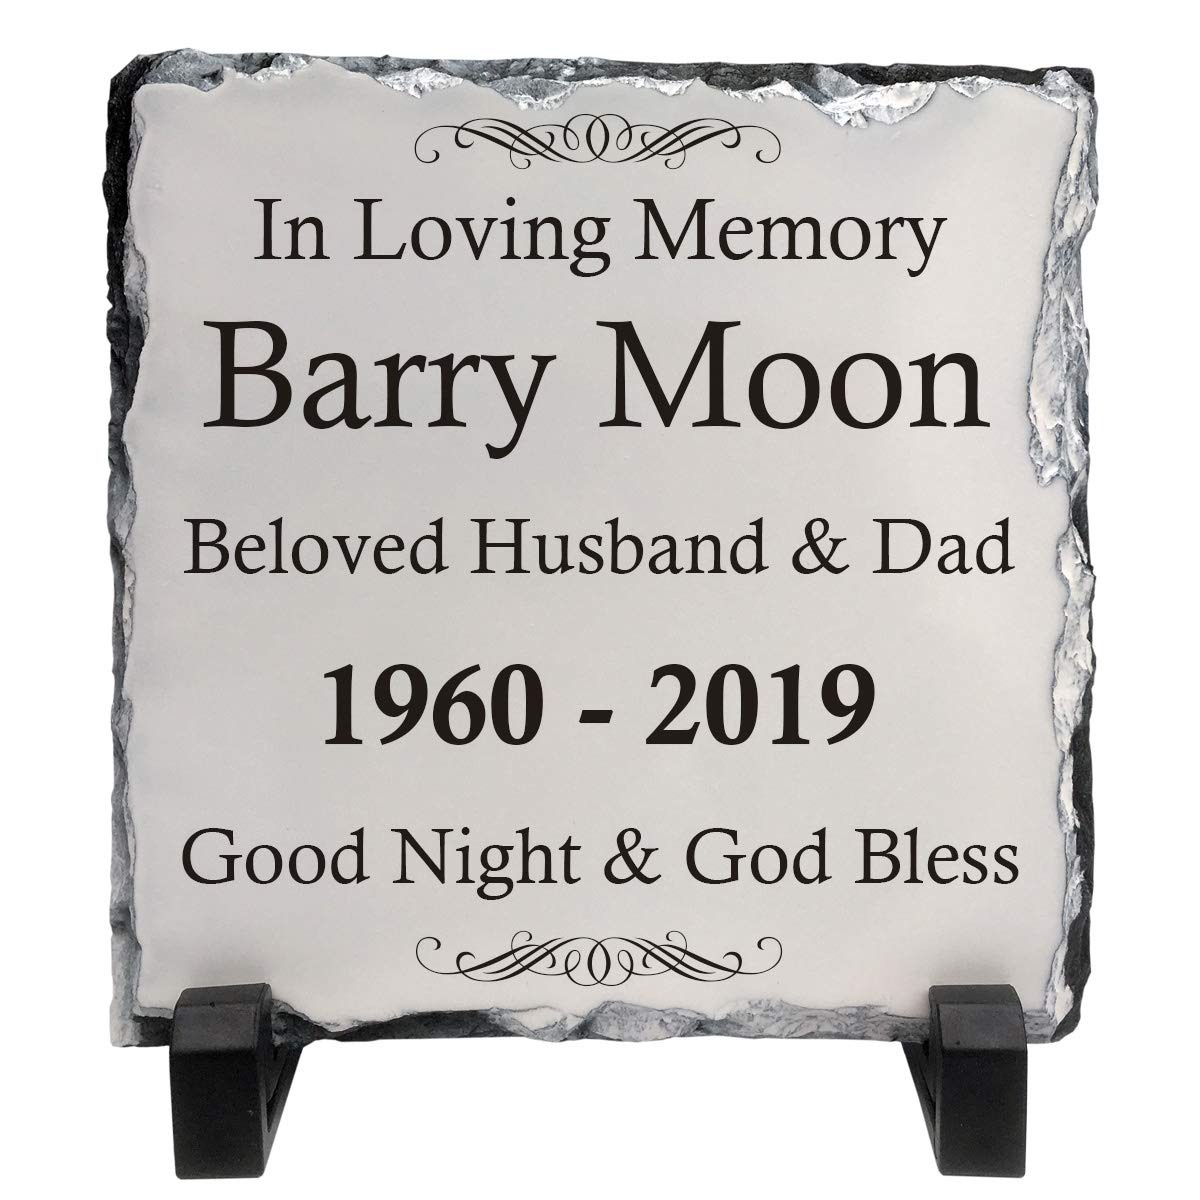 Personalised Memorial Plaque Rock Slate 15cm x 15cm Add any text Funeral Remembrance Gift idea